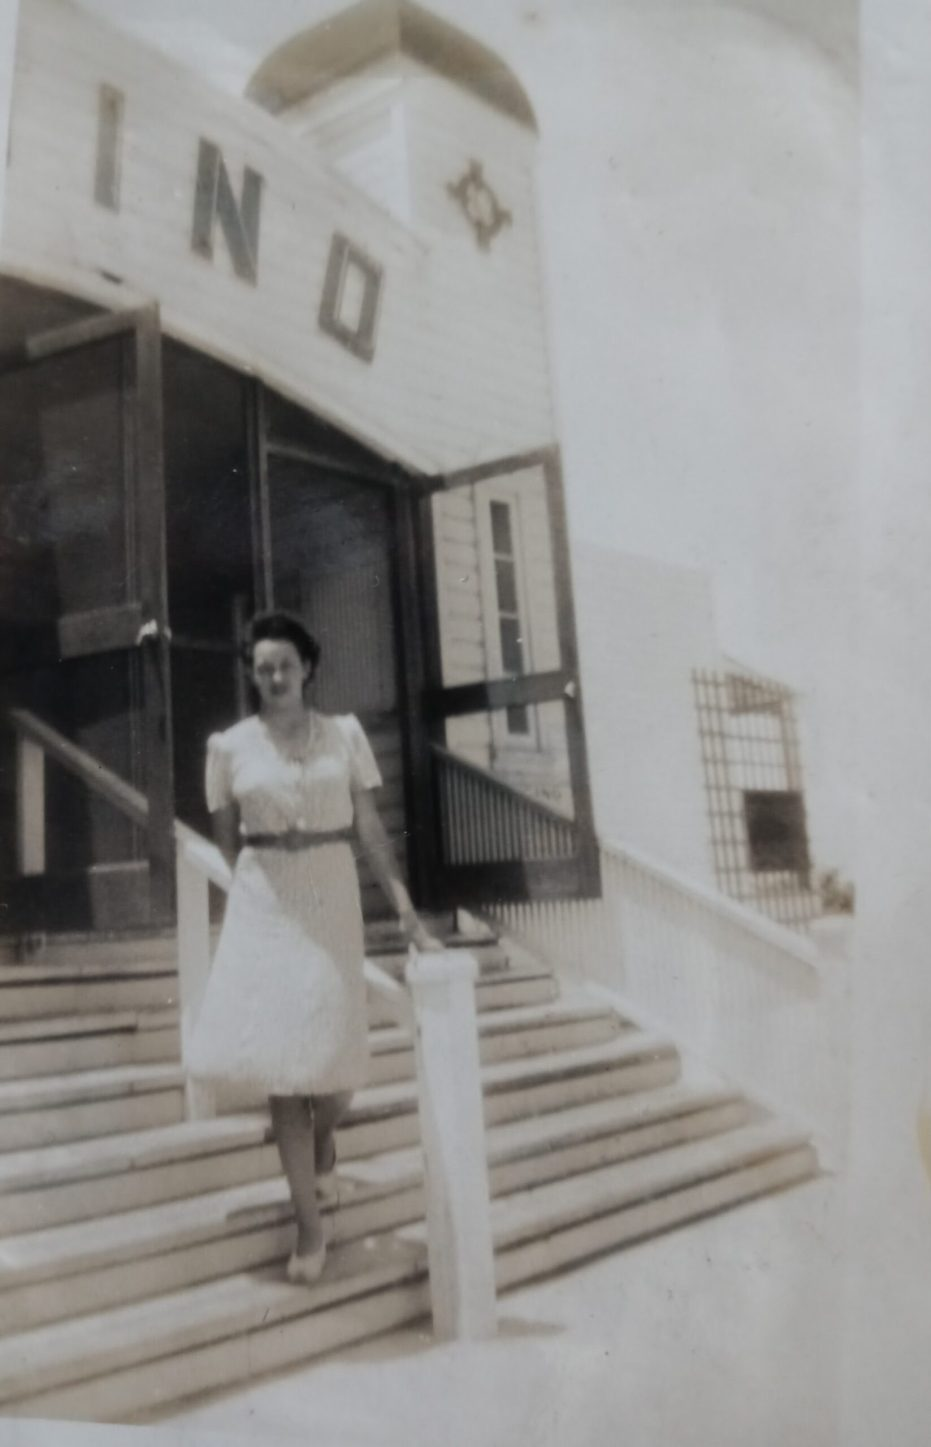 An old black and white photo of a woman standing on steps in front of a building in a white dress and dark belt.